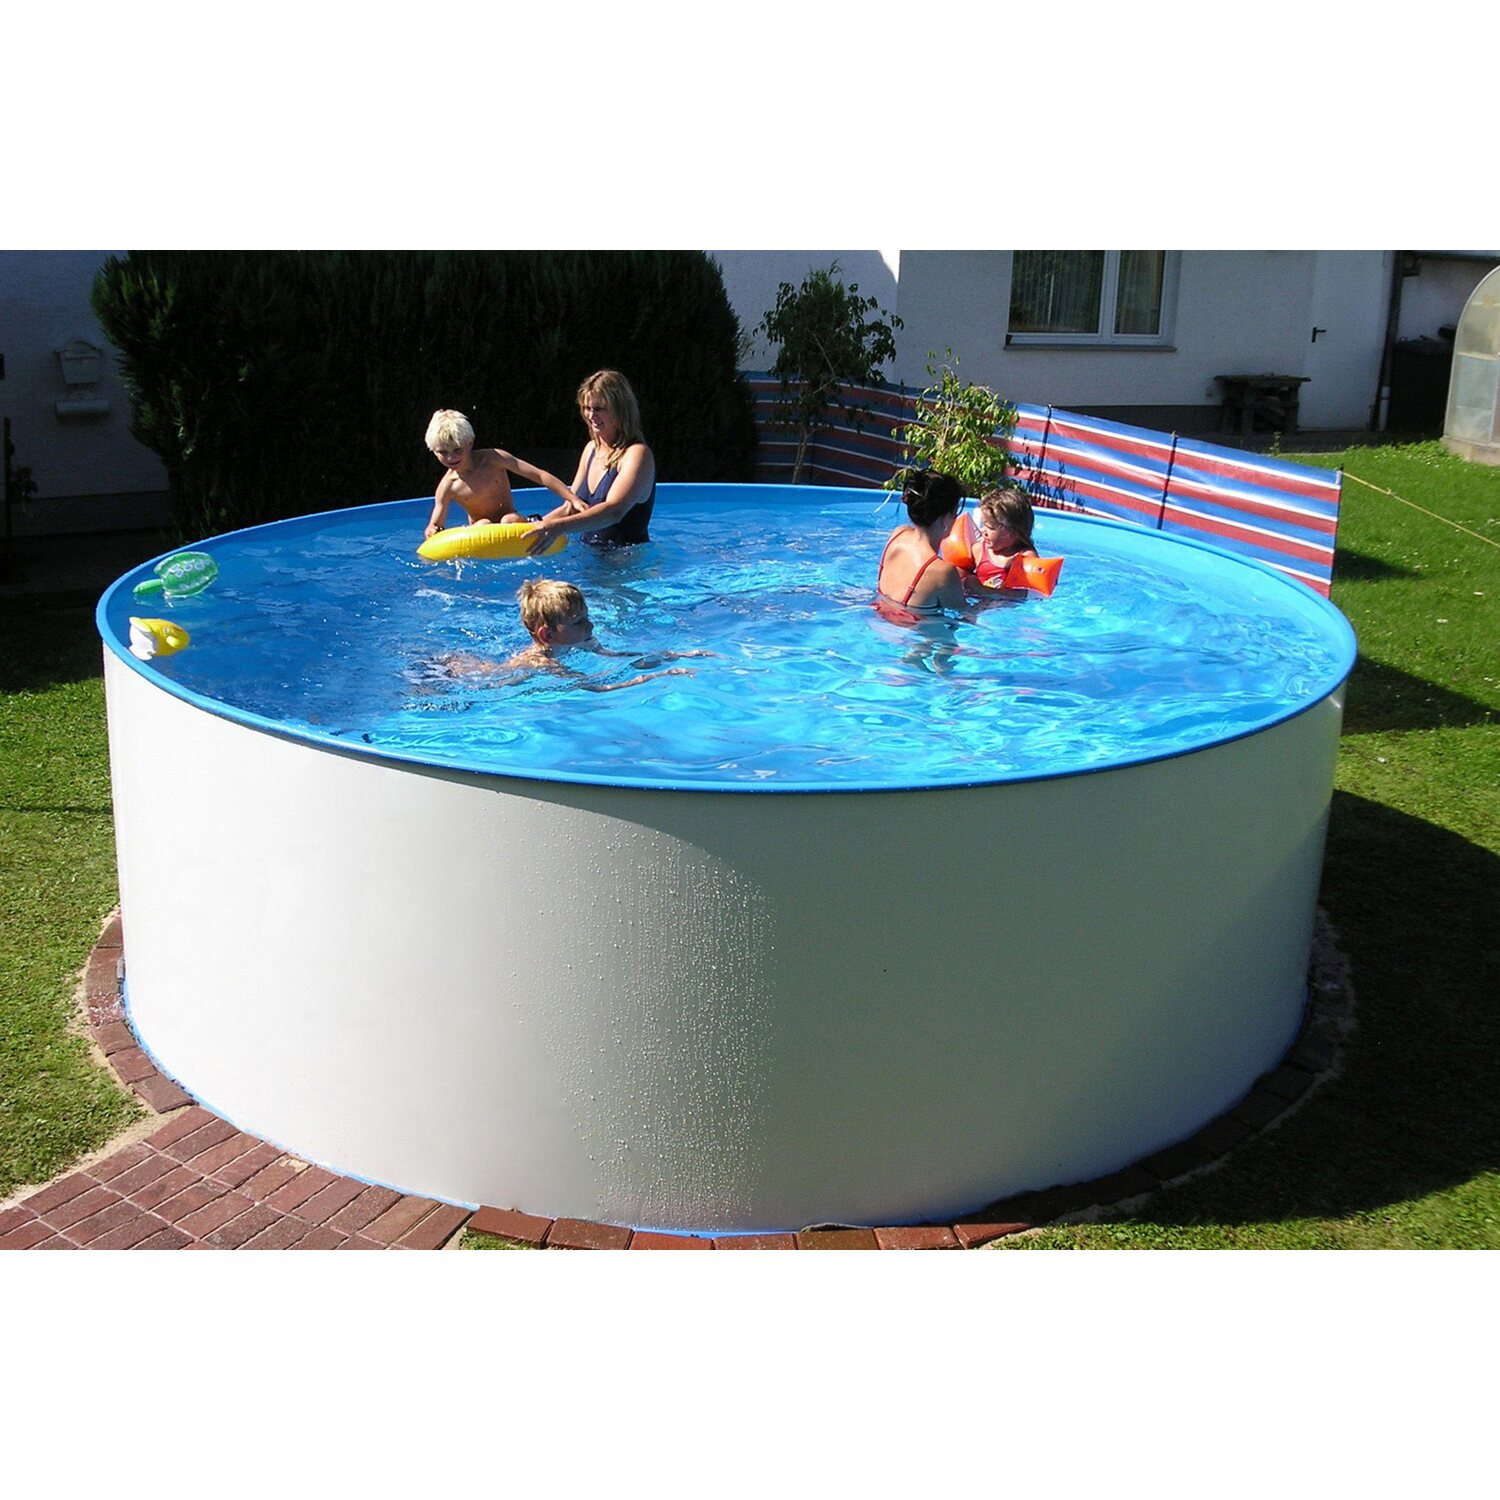 summer fun stahlwand pool set malediven aufstellbecken 450 cm x 120 cm kaufen bei obi. Black Bedroom Furniture Sets. Home Design Ideas